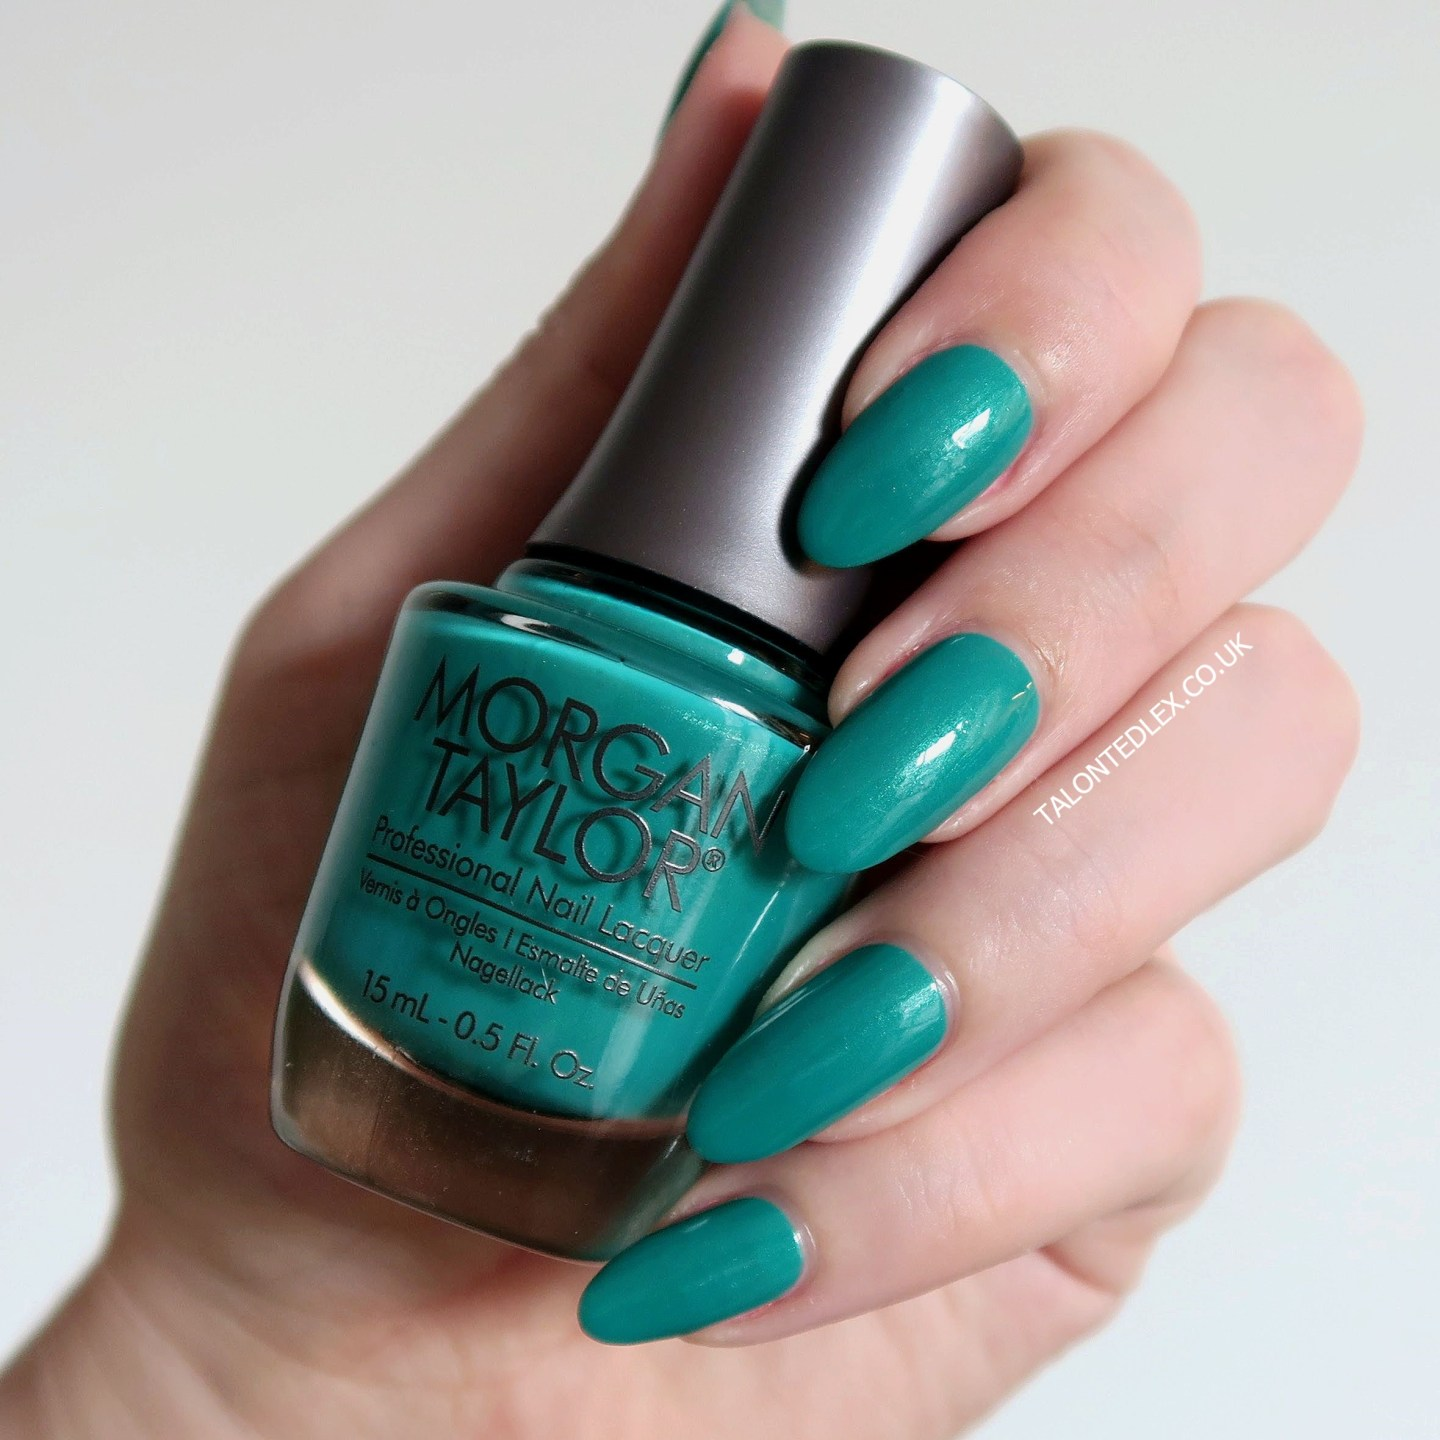 Repin and click to see the full Morgan Taylor Rocketman collection, including 'Sir Teal To You' - a green creme polish. New Morgan Taylor nail polish range. #talontedlex #morgantaylor #greennails